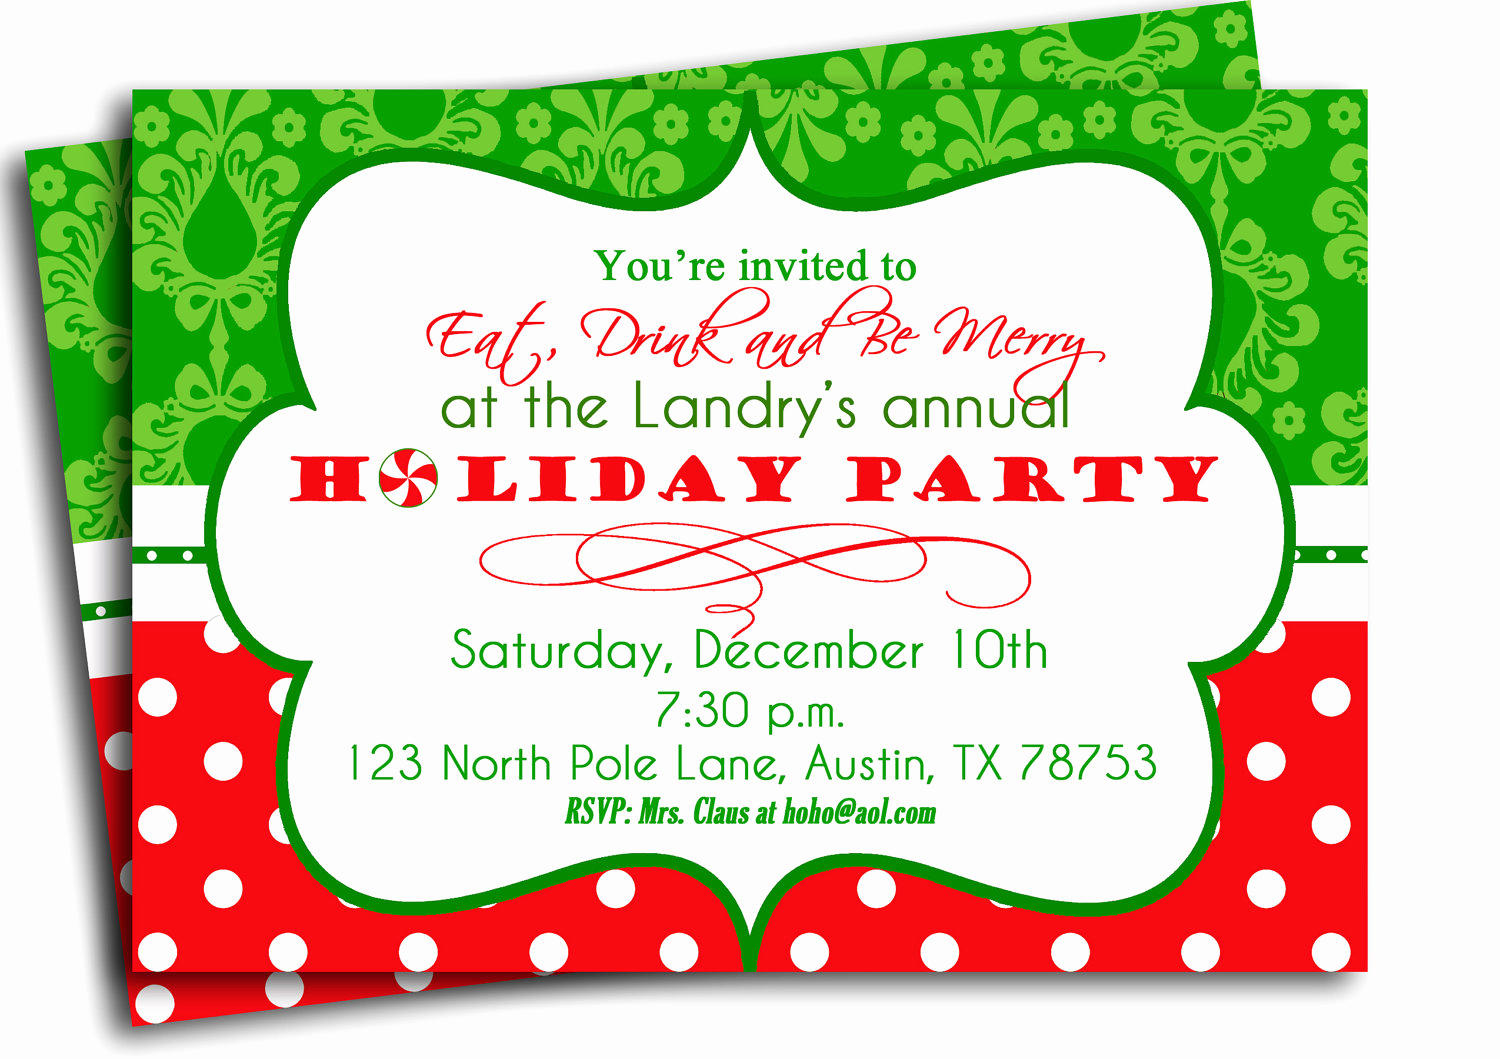 Work Christmas Party Invitation Elegant Pany Holiday Party Invitation Templates